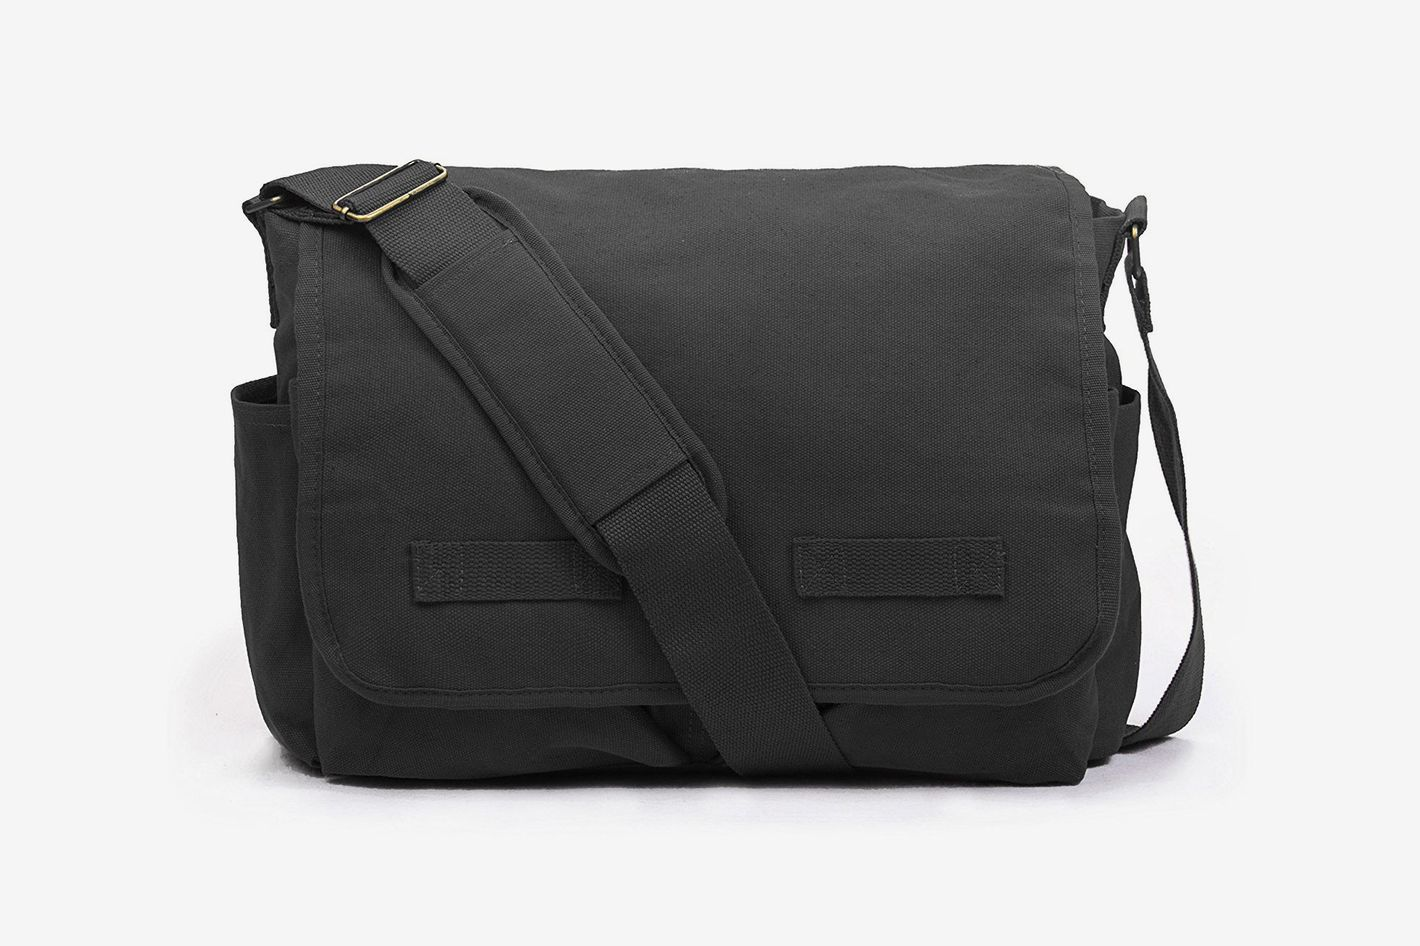 3c8a95ab9958 11 Best Messenger Bags for Men 2018